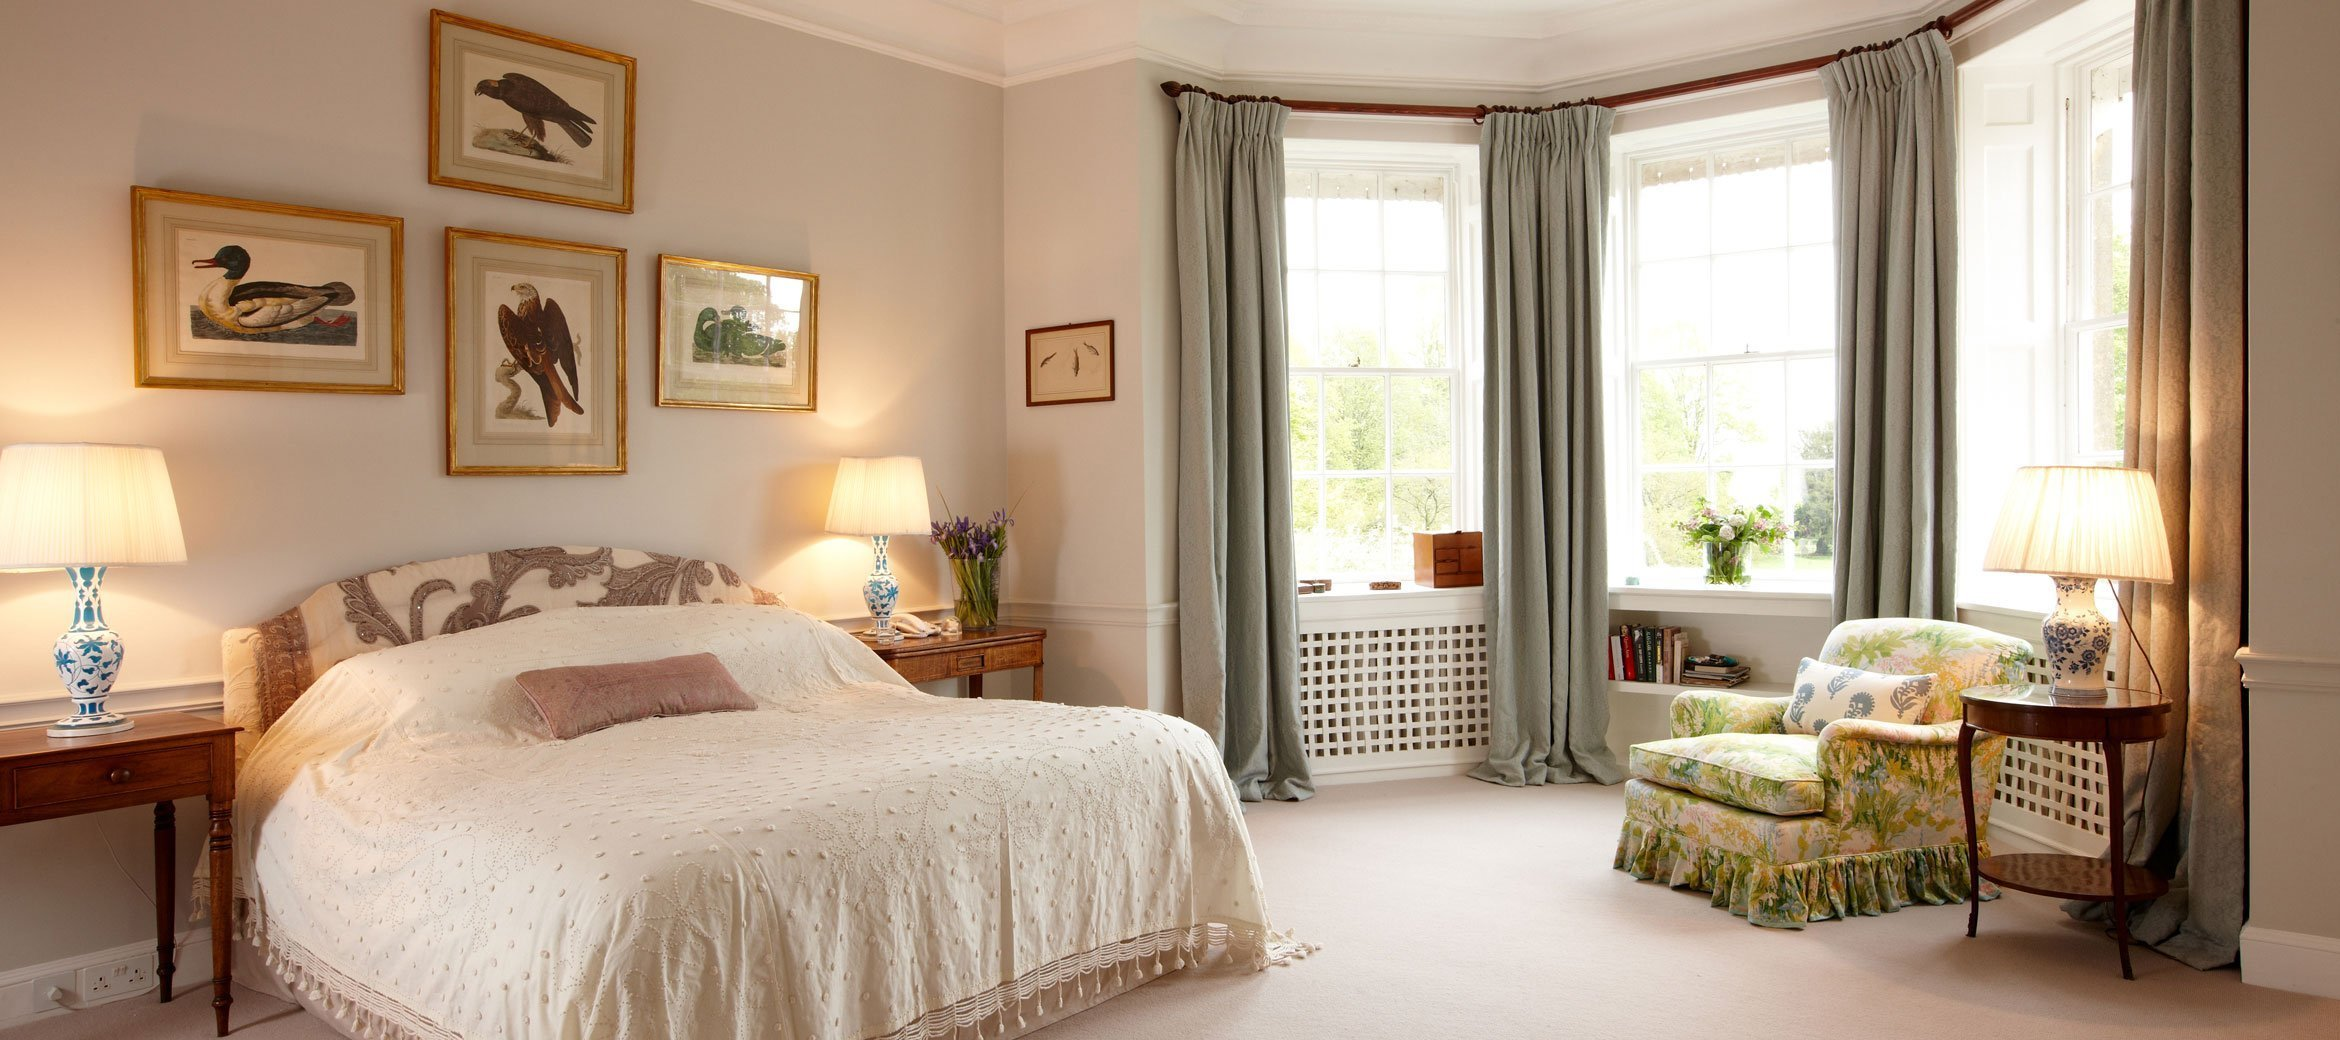 cornwell-manor-pastel-ensuite-bedroom